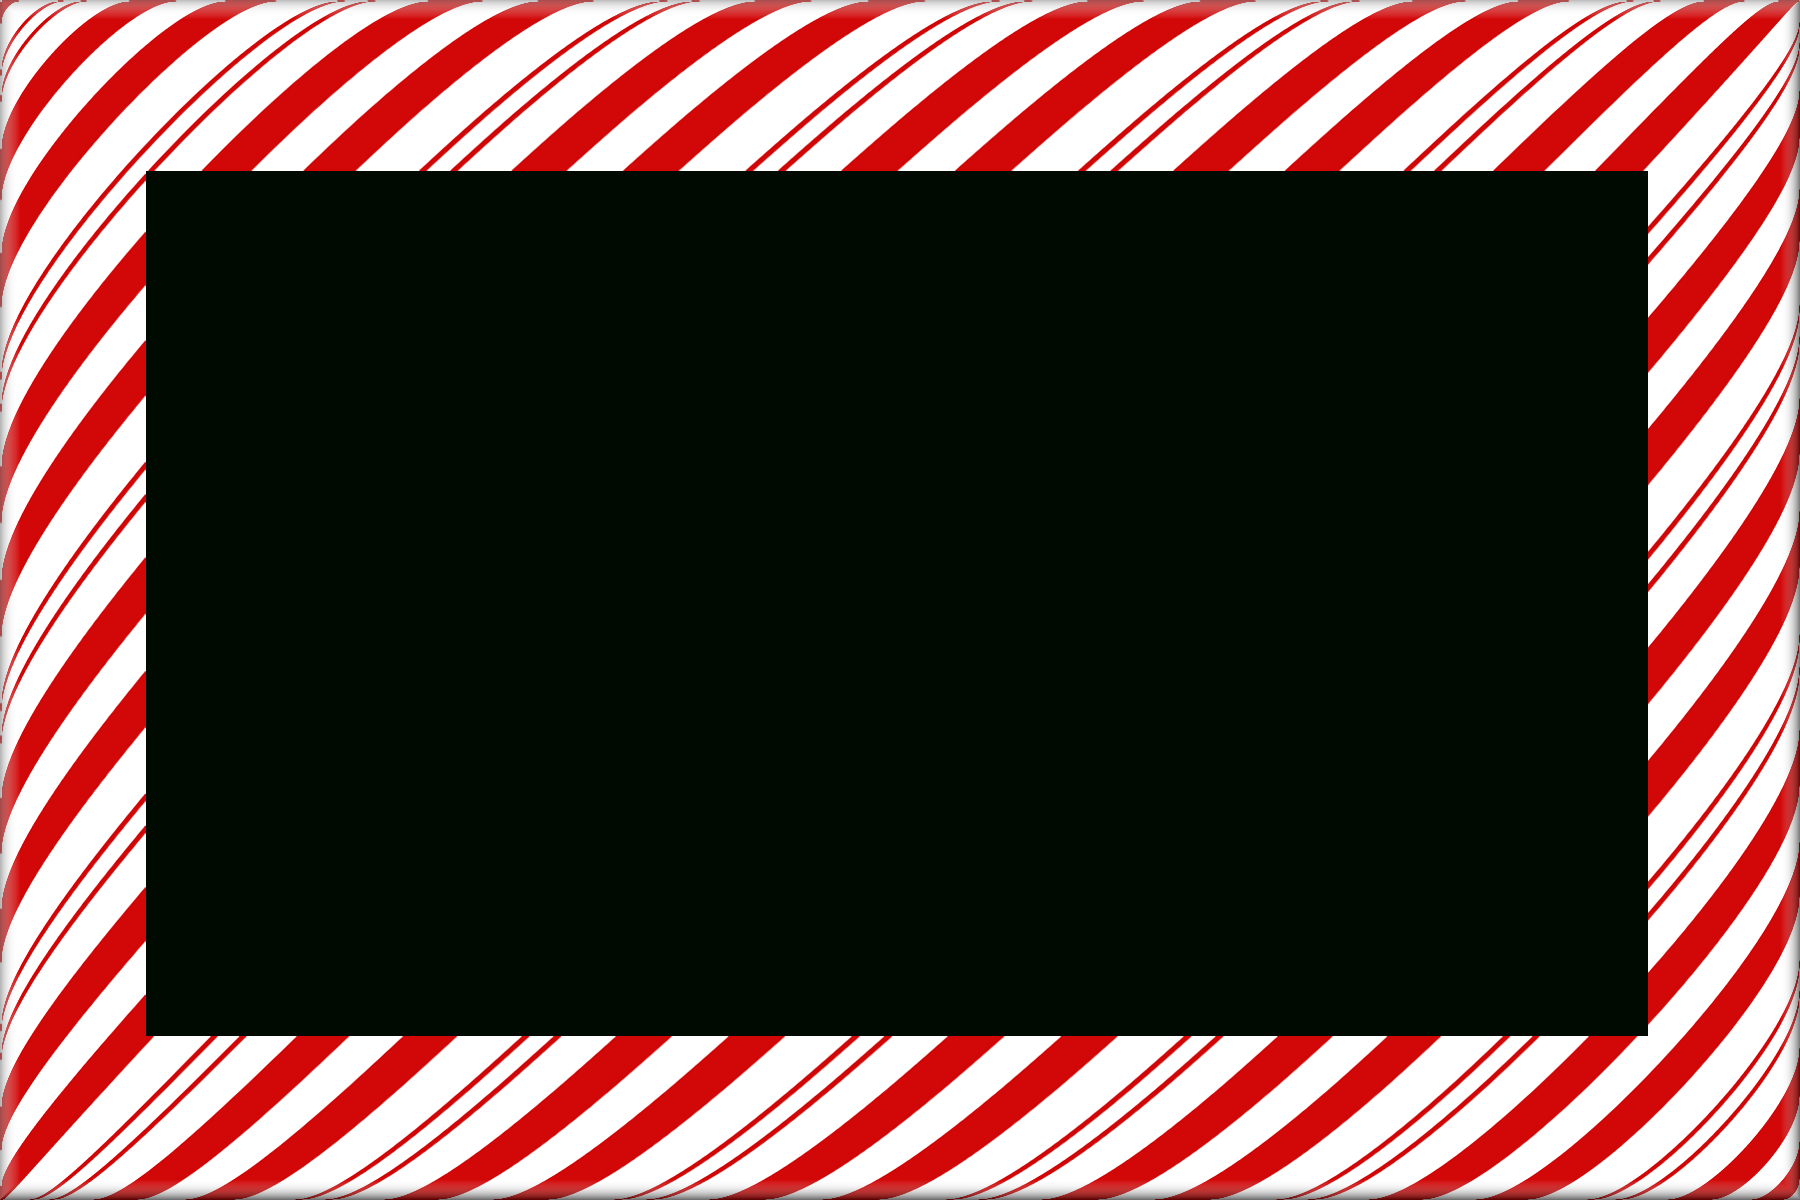 Candy Cane Christmas Borders And Frames | Digital Frames & Borders - Free Candy Cane Template Printable